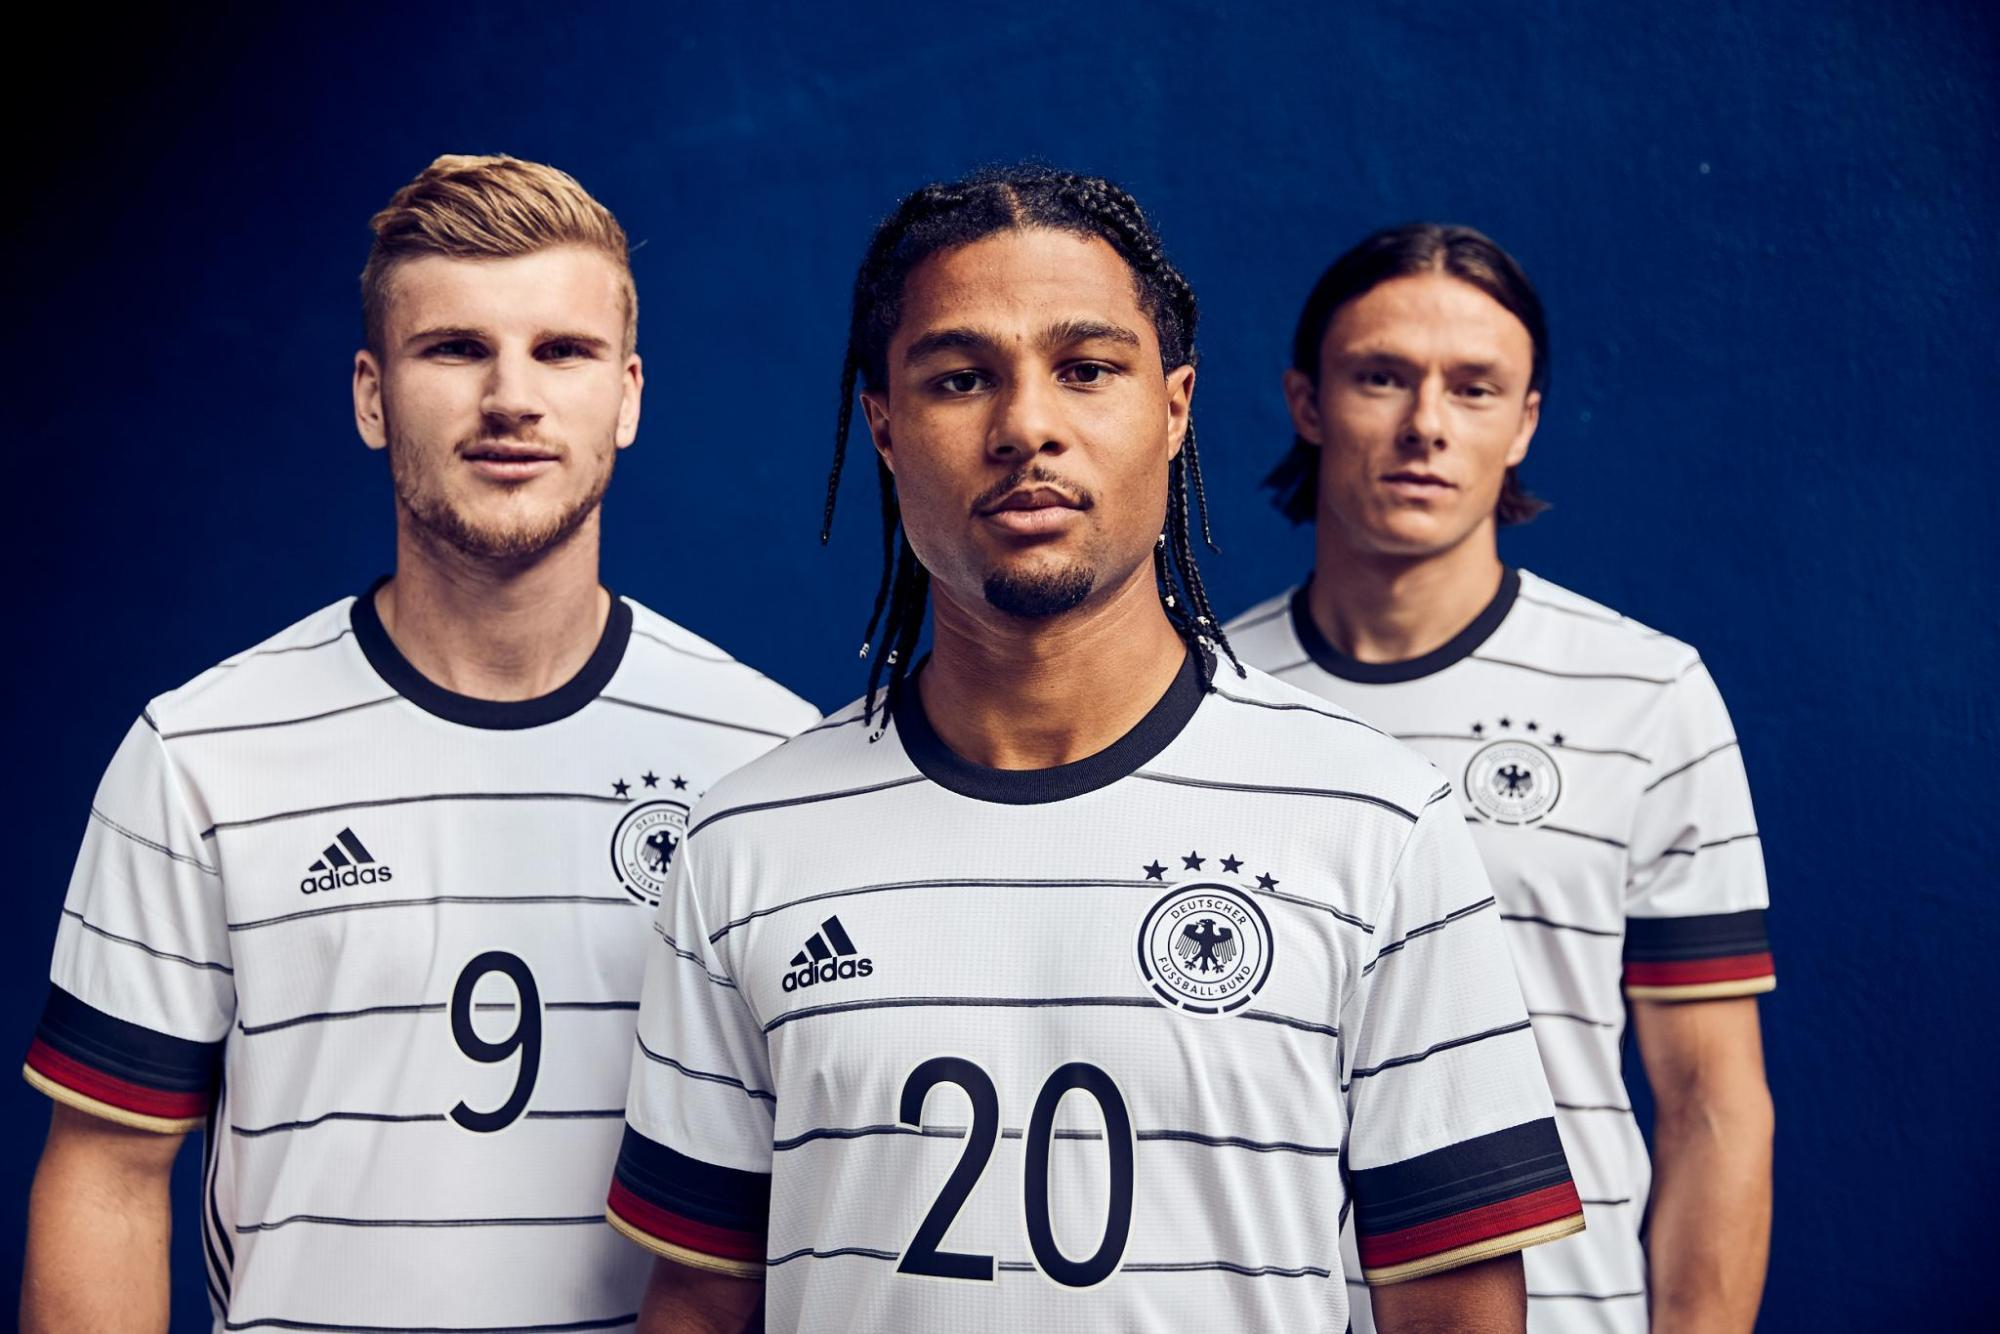 Maglie calcio europei 2020 germania